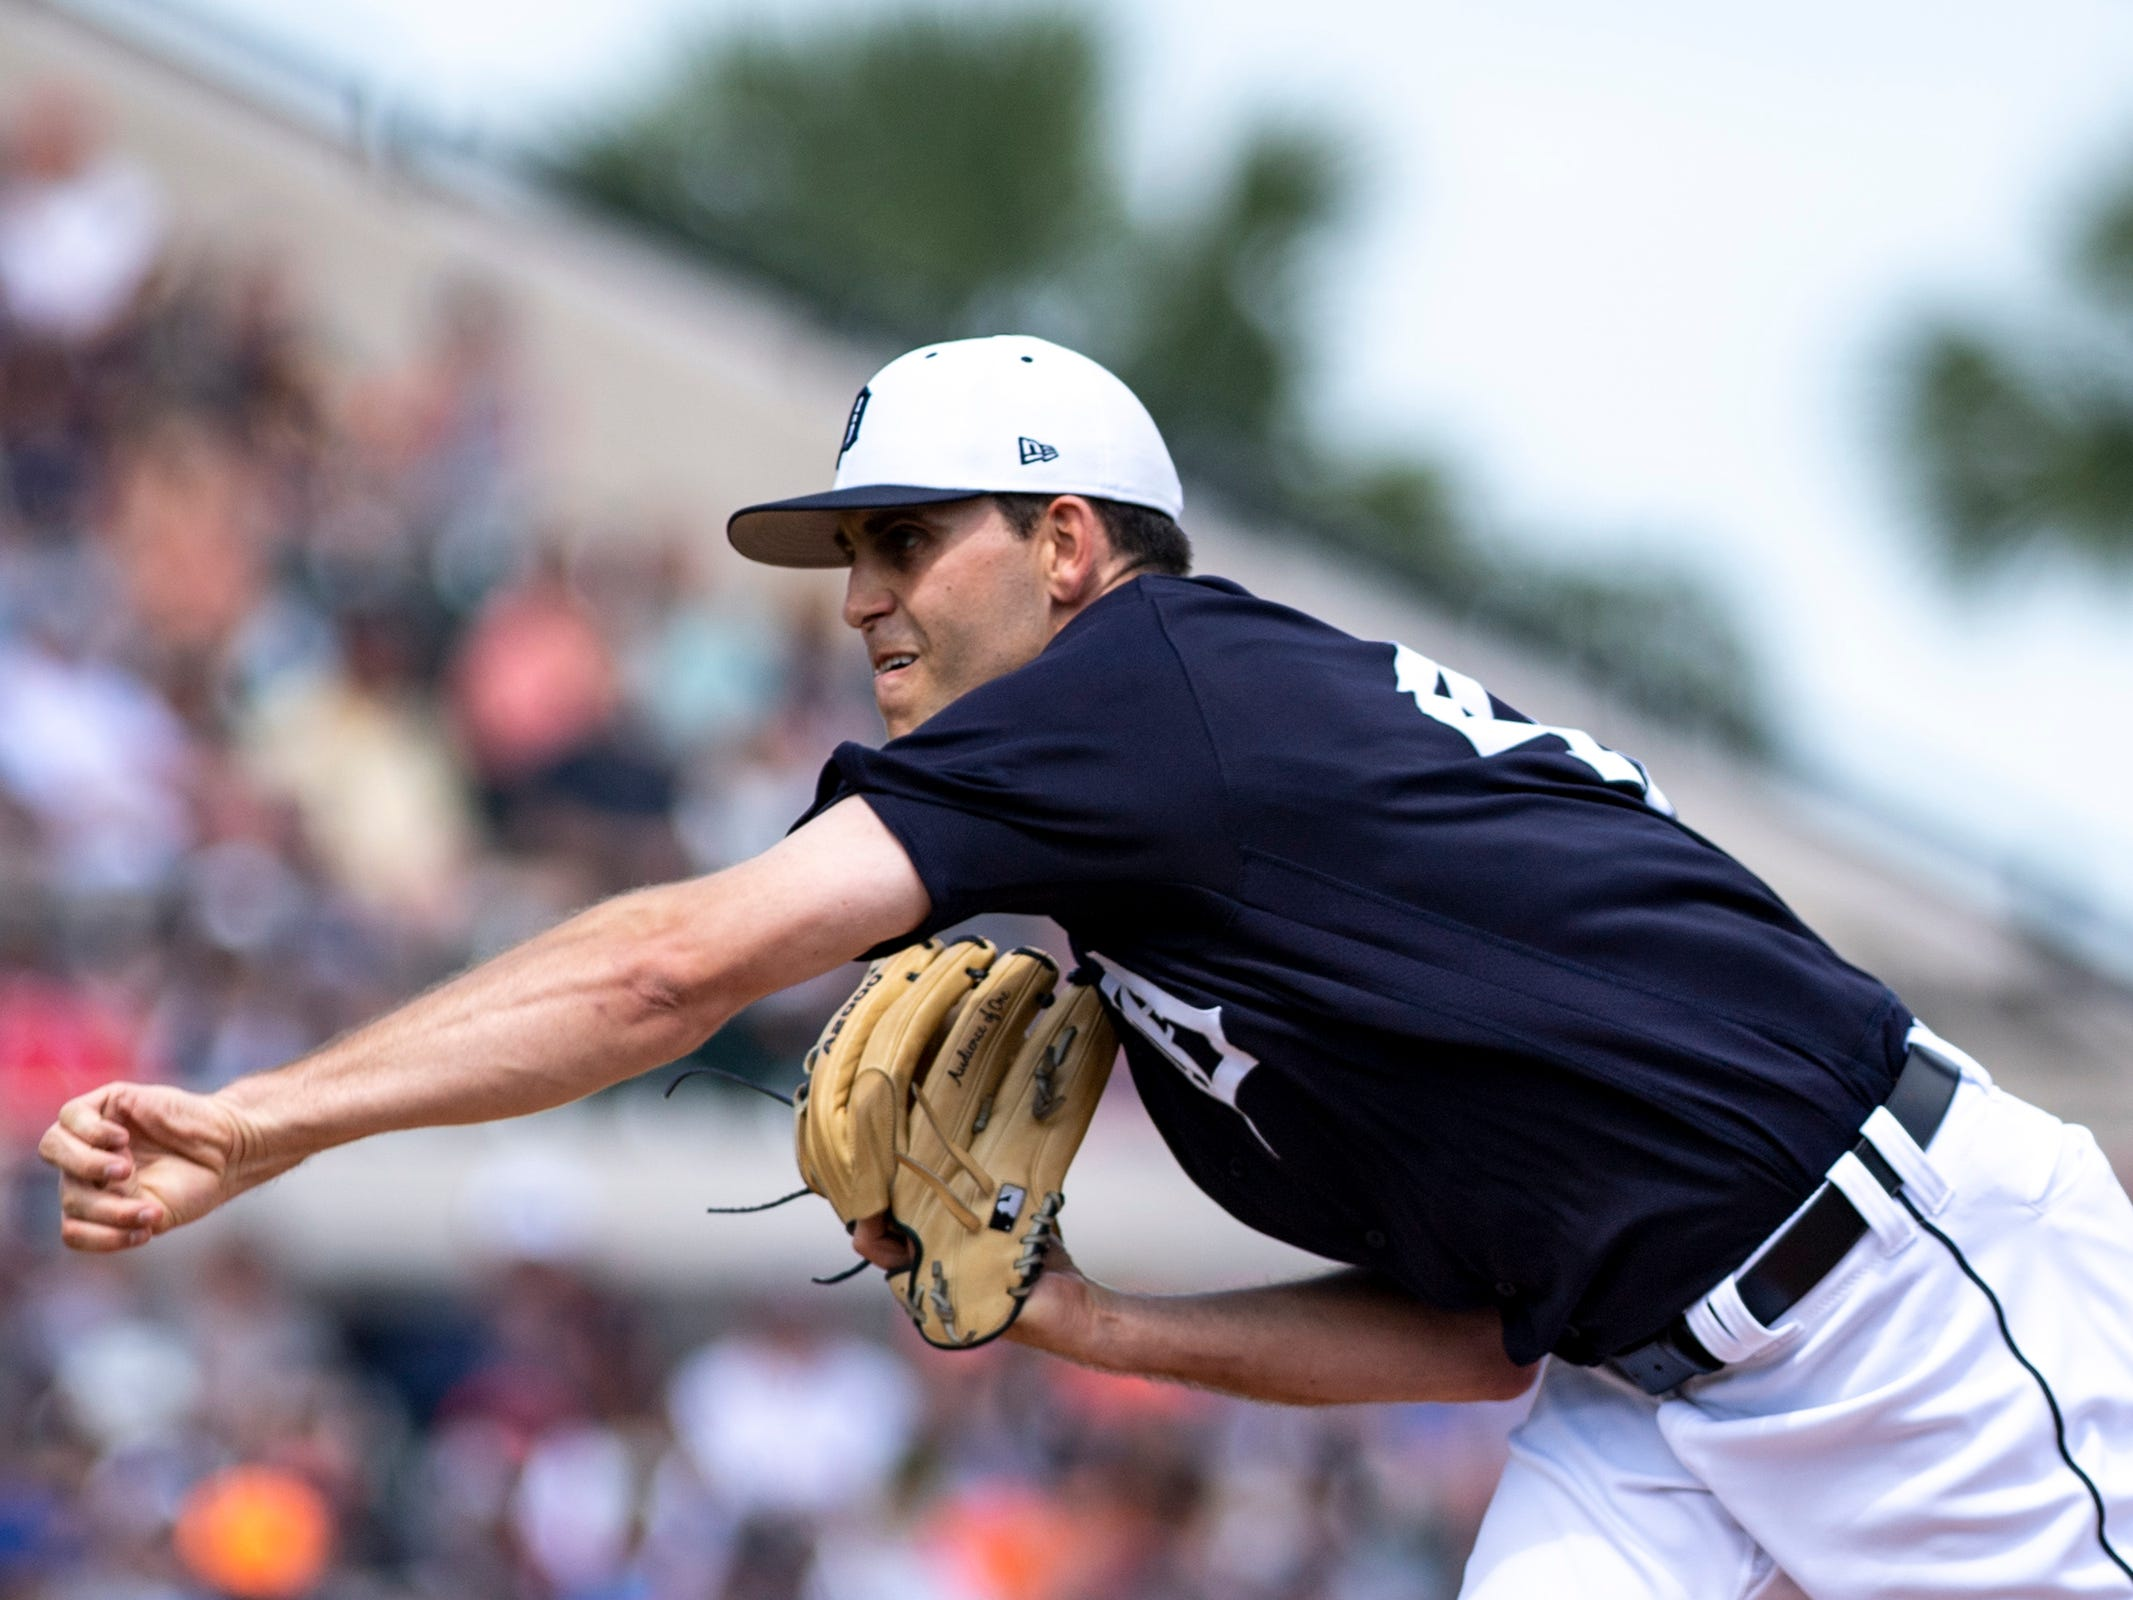 Detroit Tigers pitcher Matthew Boyd throws a pitch during the first inning against the Boston Red Sox at Joker Marchant Stadium, March 14, 2019 in Lakeland, Fla.